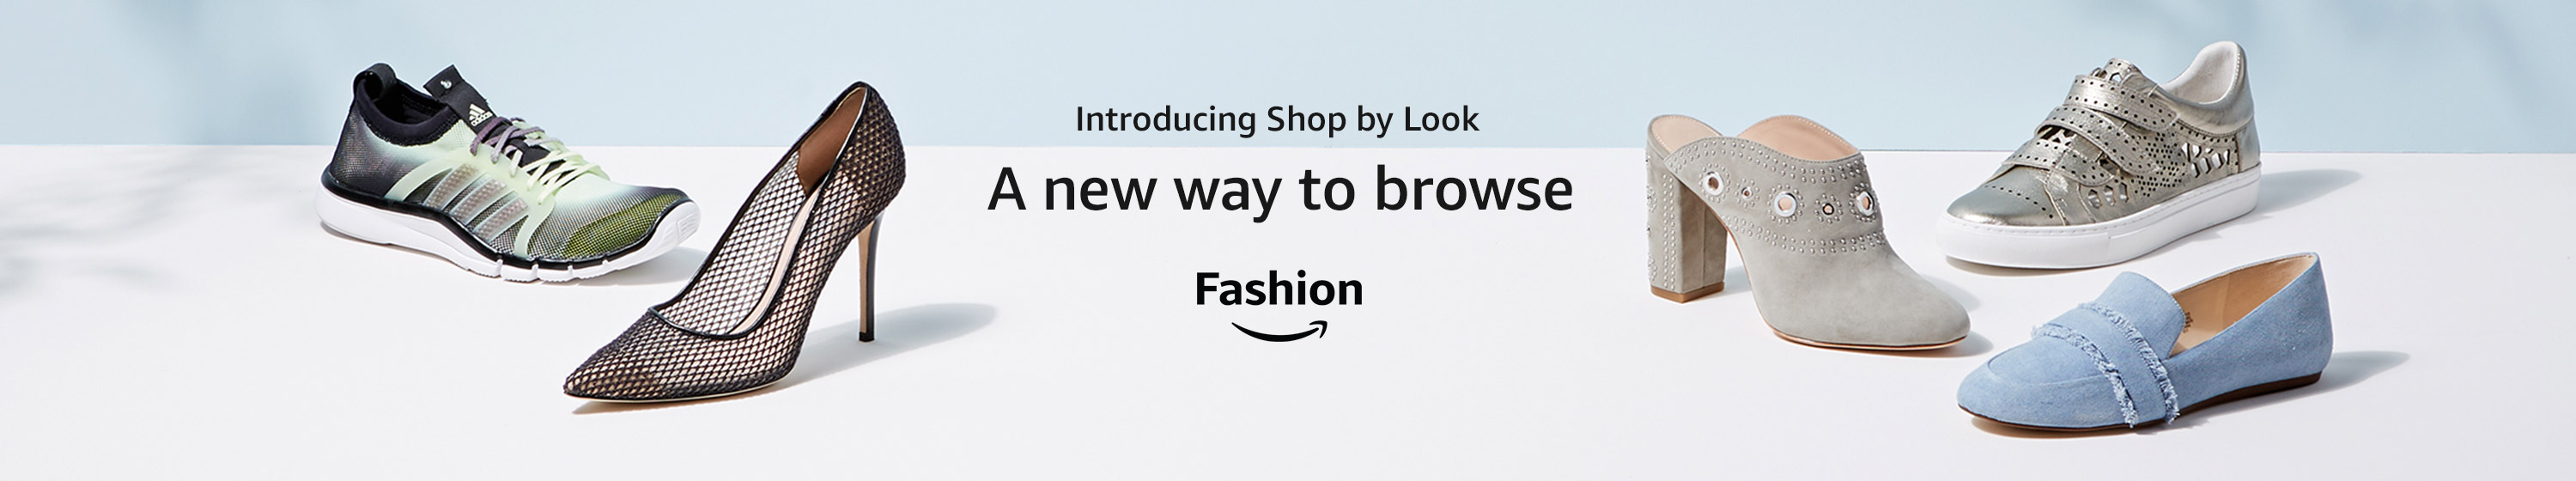 Introducing Shop by Look: A new way to browse